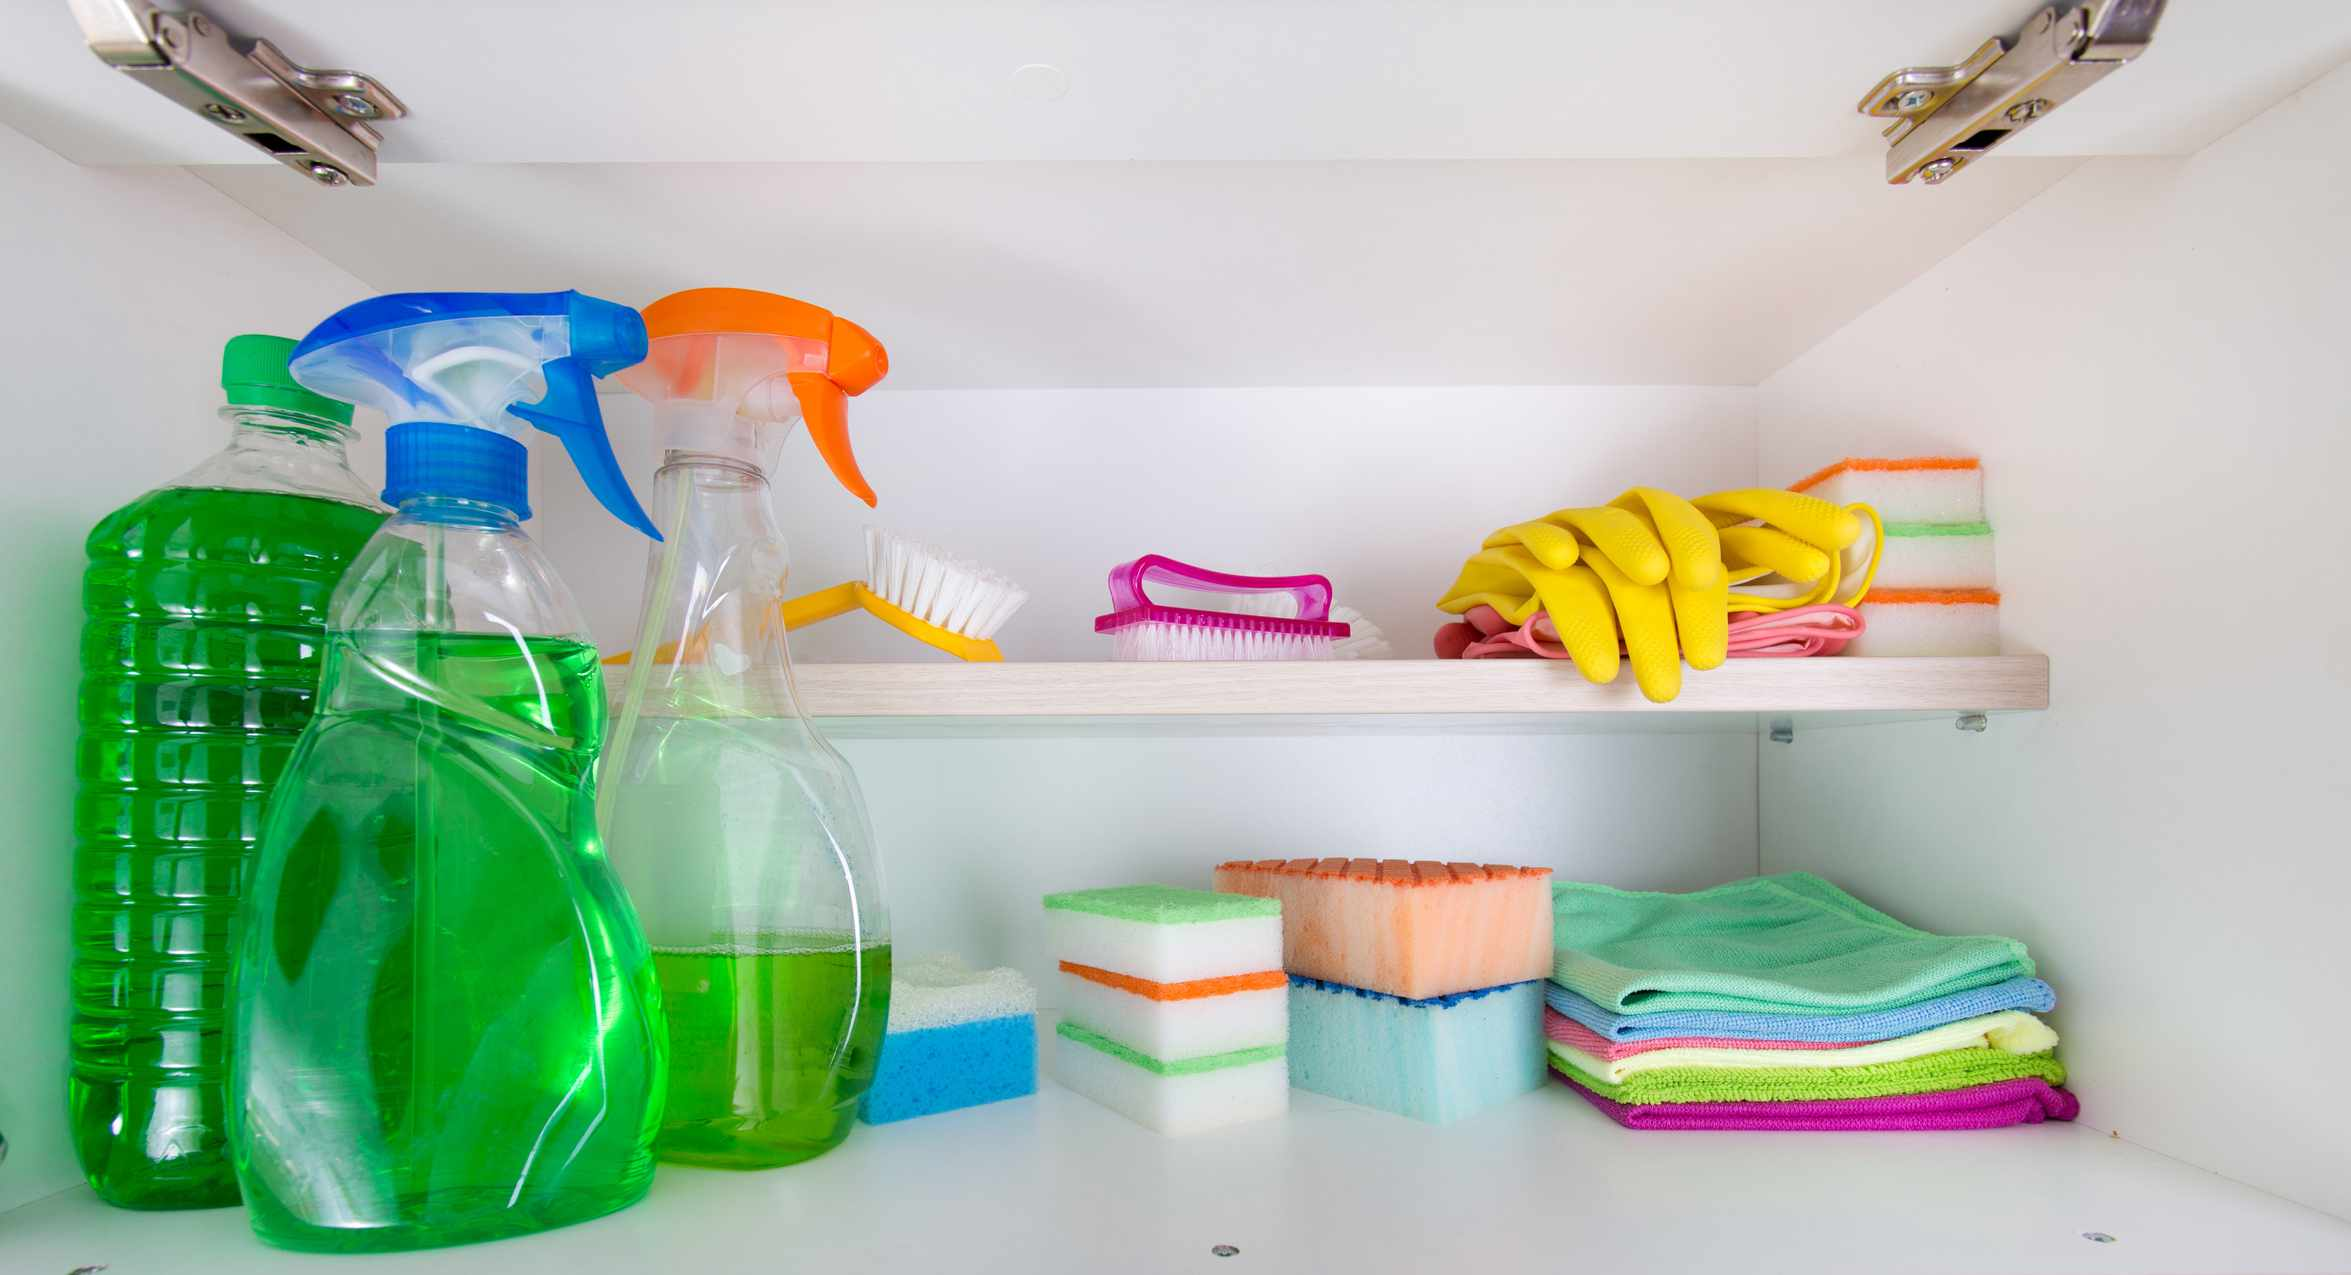 Cleaning supplies in a white cabinet.